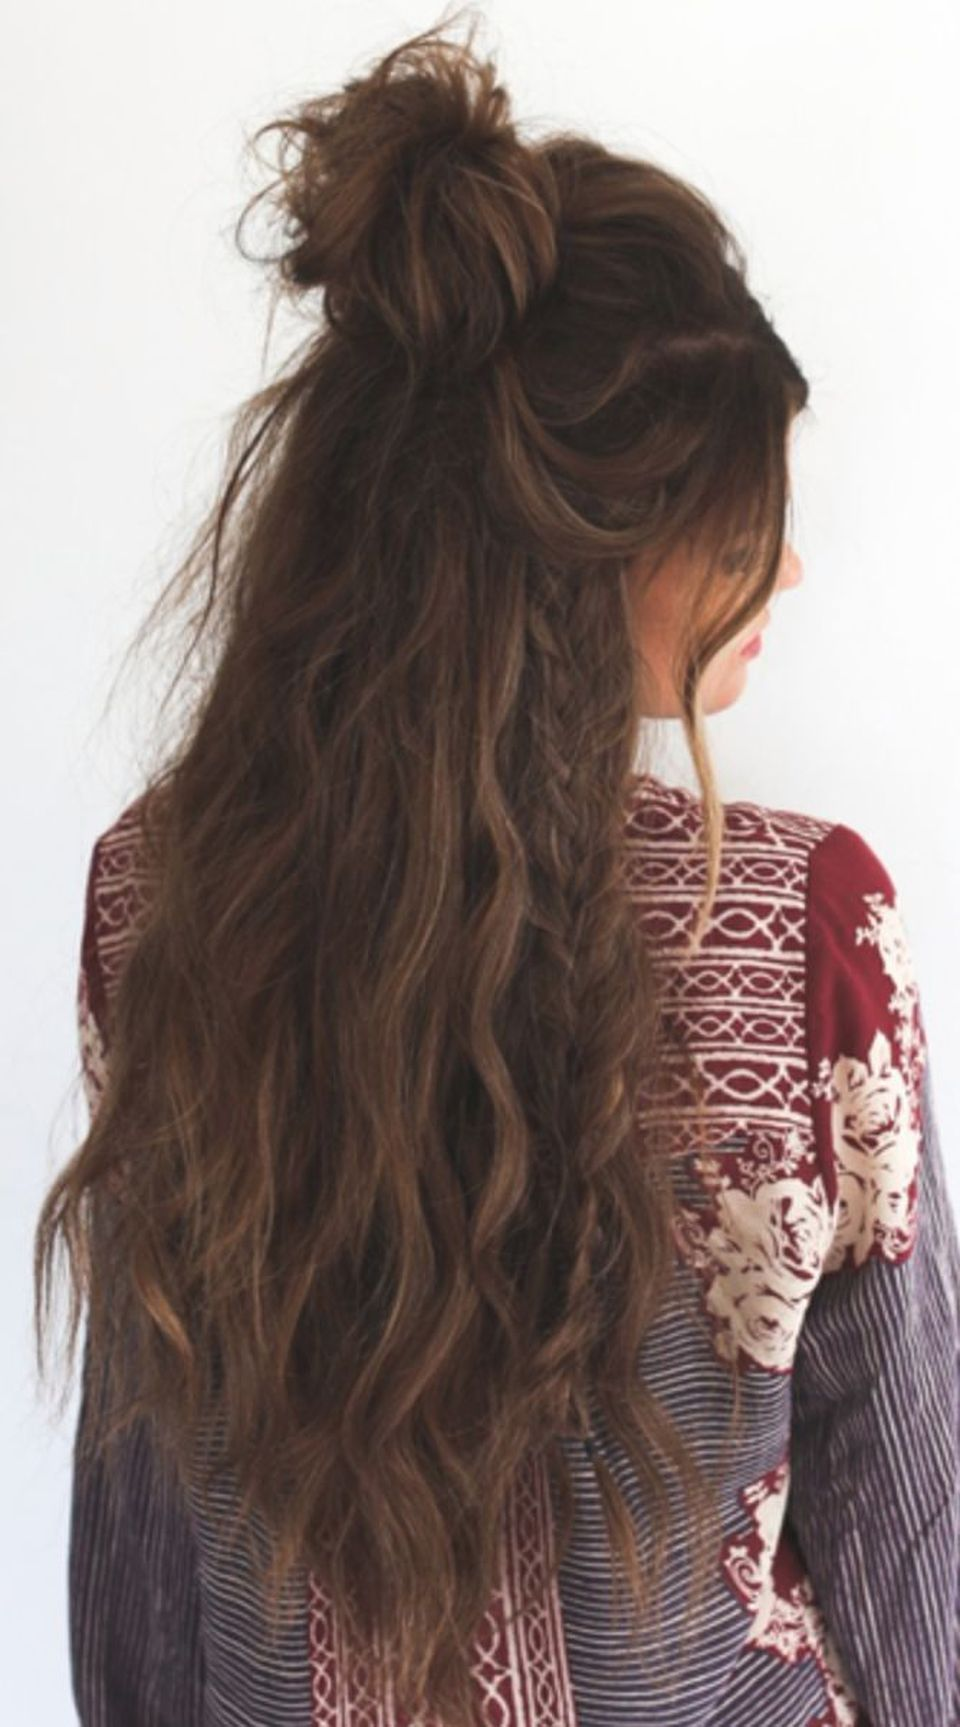 Stunning boho coachella hairstyles ideas 41